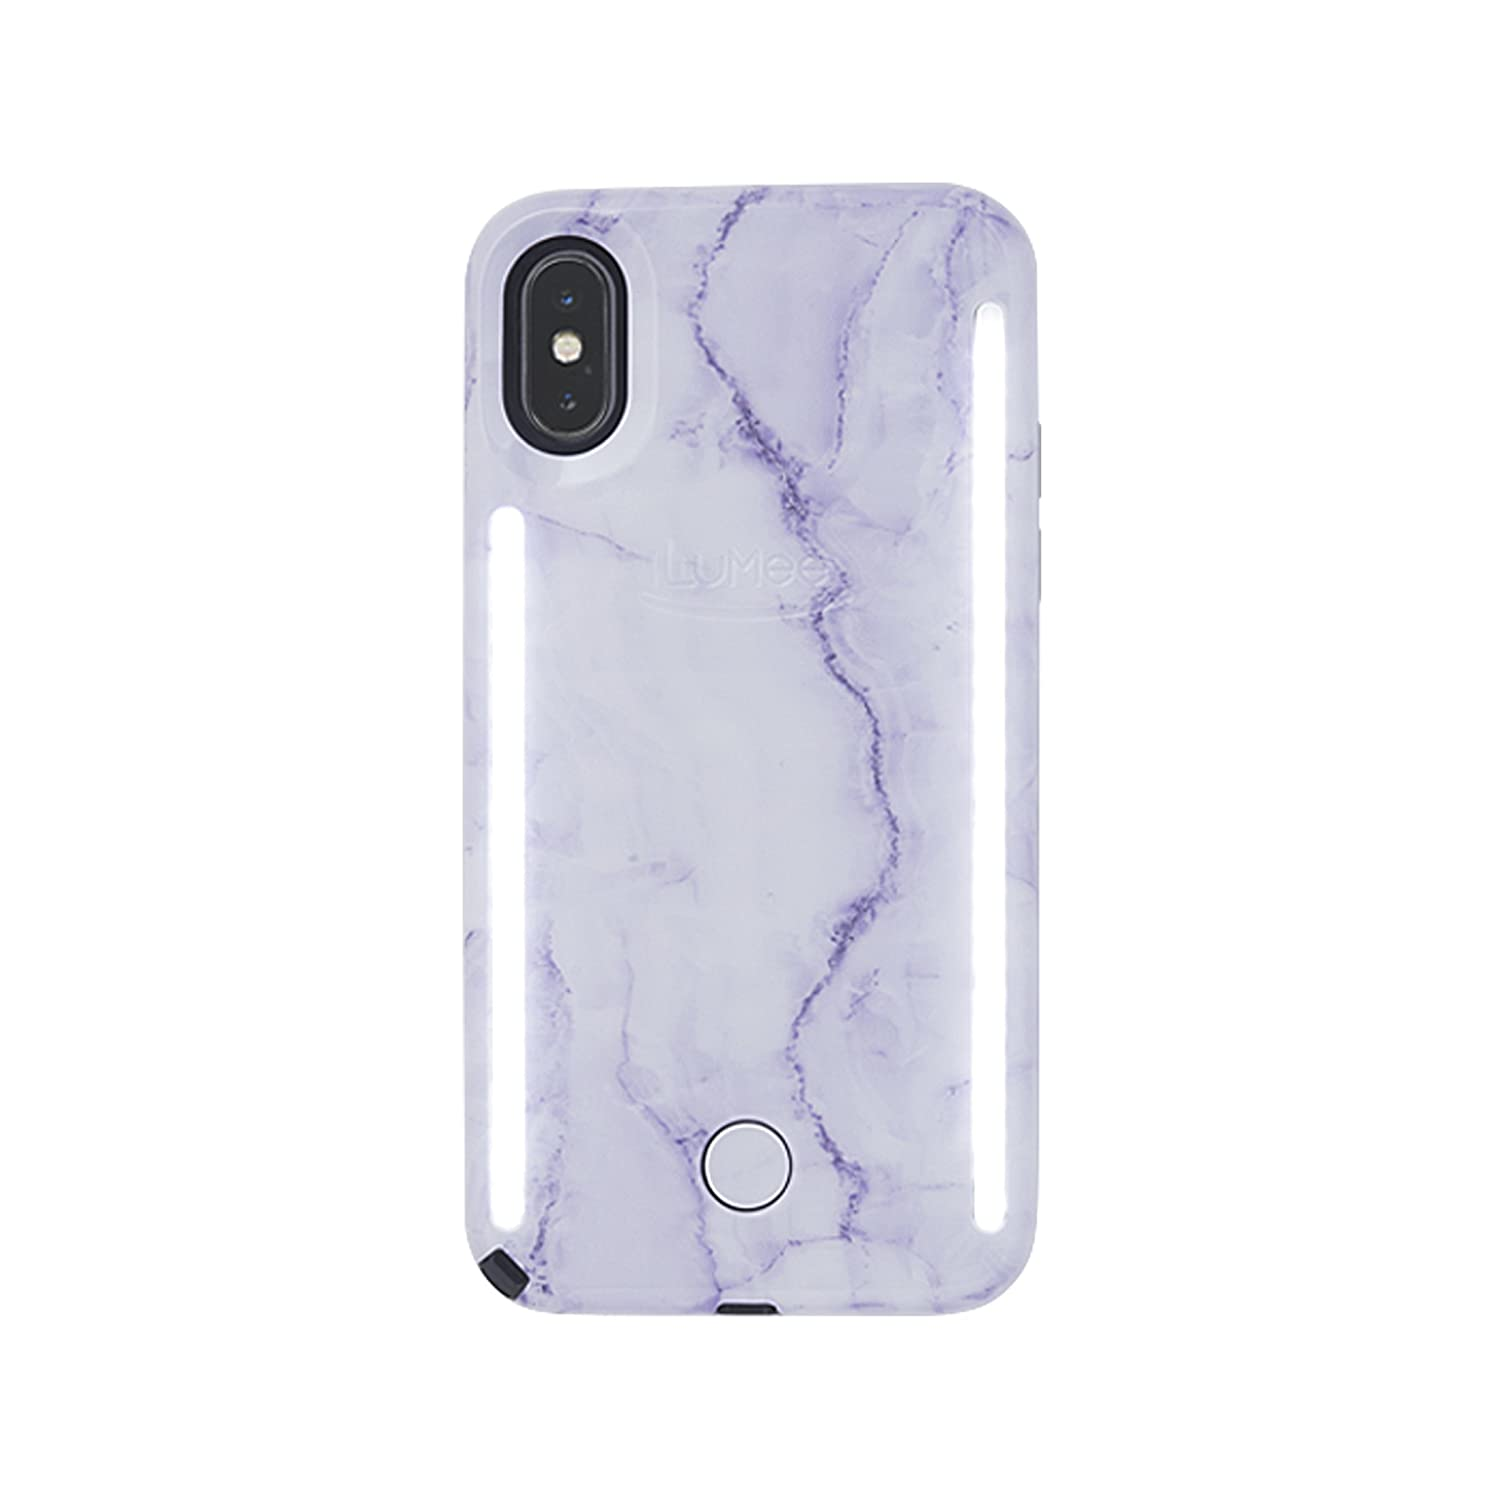 finest selection 89475 8c38b LuMee Duo Selfie Phone Case, Mirage Jewel | Front & Back LED Lighting,  Variable Dimmer | Shock Absorption, Bumper Case | iPhone X / iPhone XS